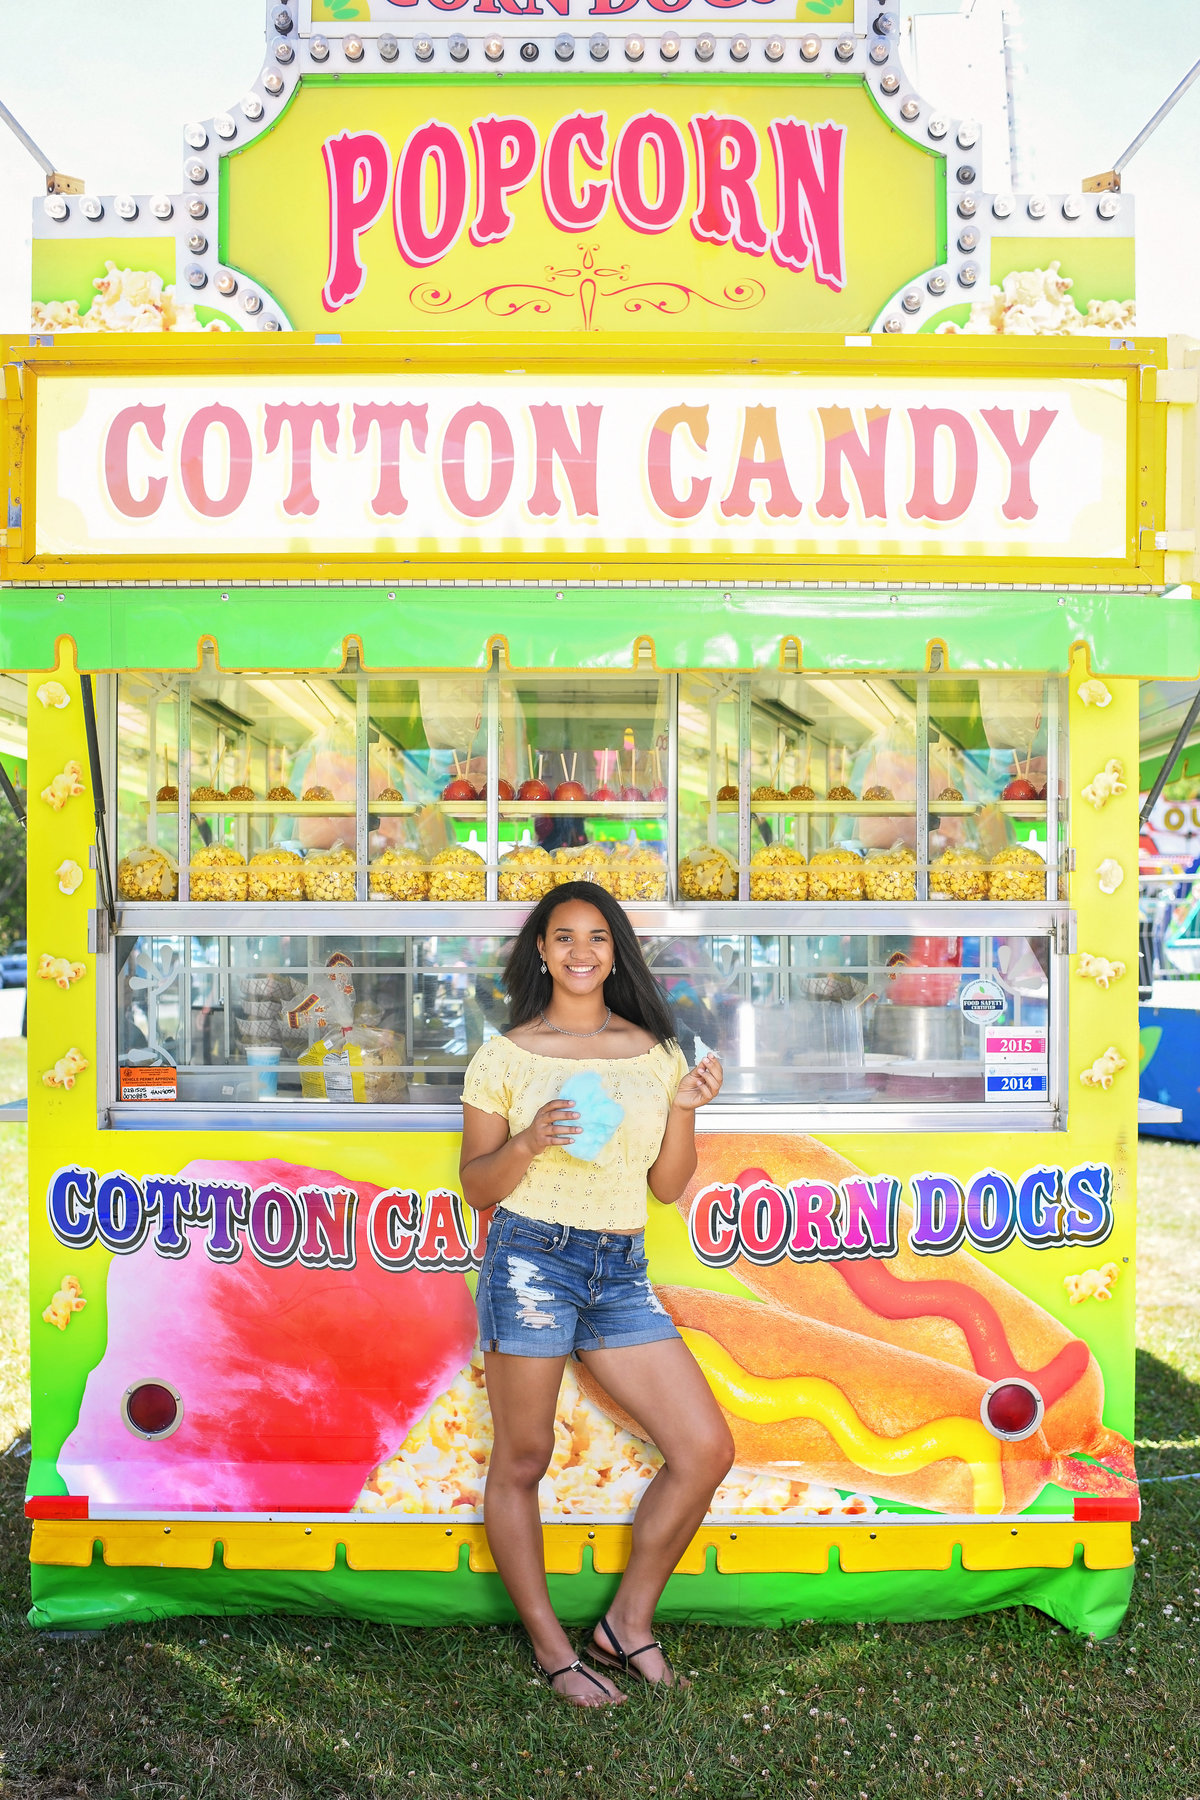 Redway-California-senior-portrait-photographer-Parky's-Pics-Photography-Humboldt-County-Fortuna-Rodeo-cotton-candy-Carnival-4.jpg